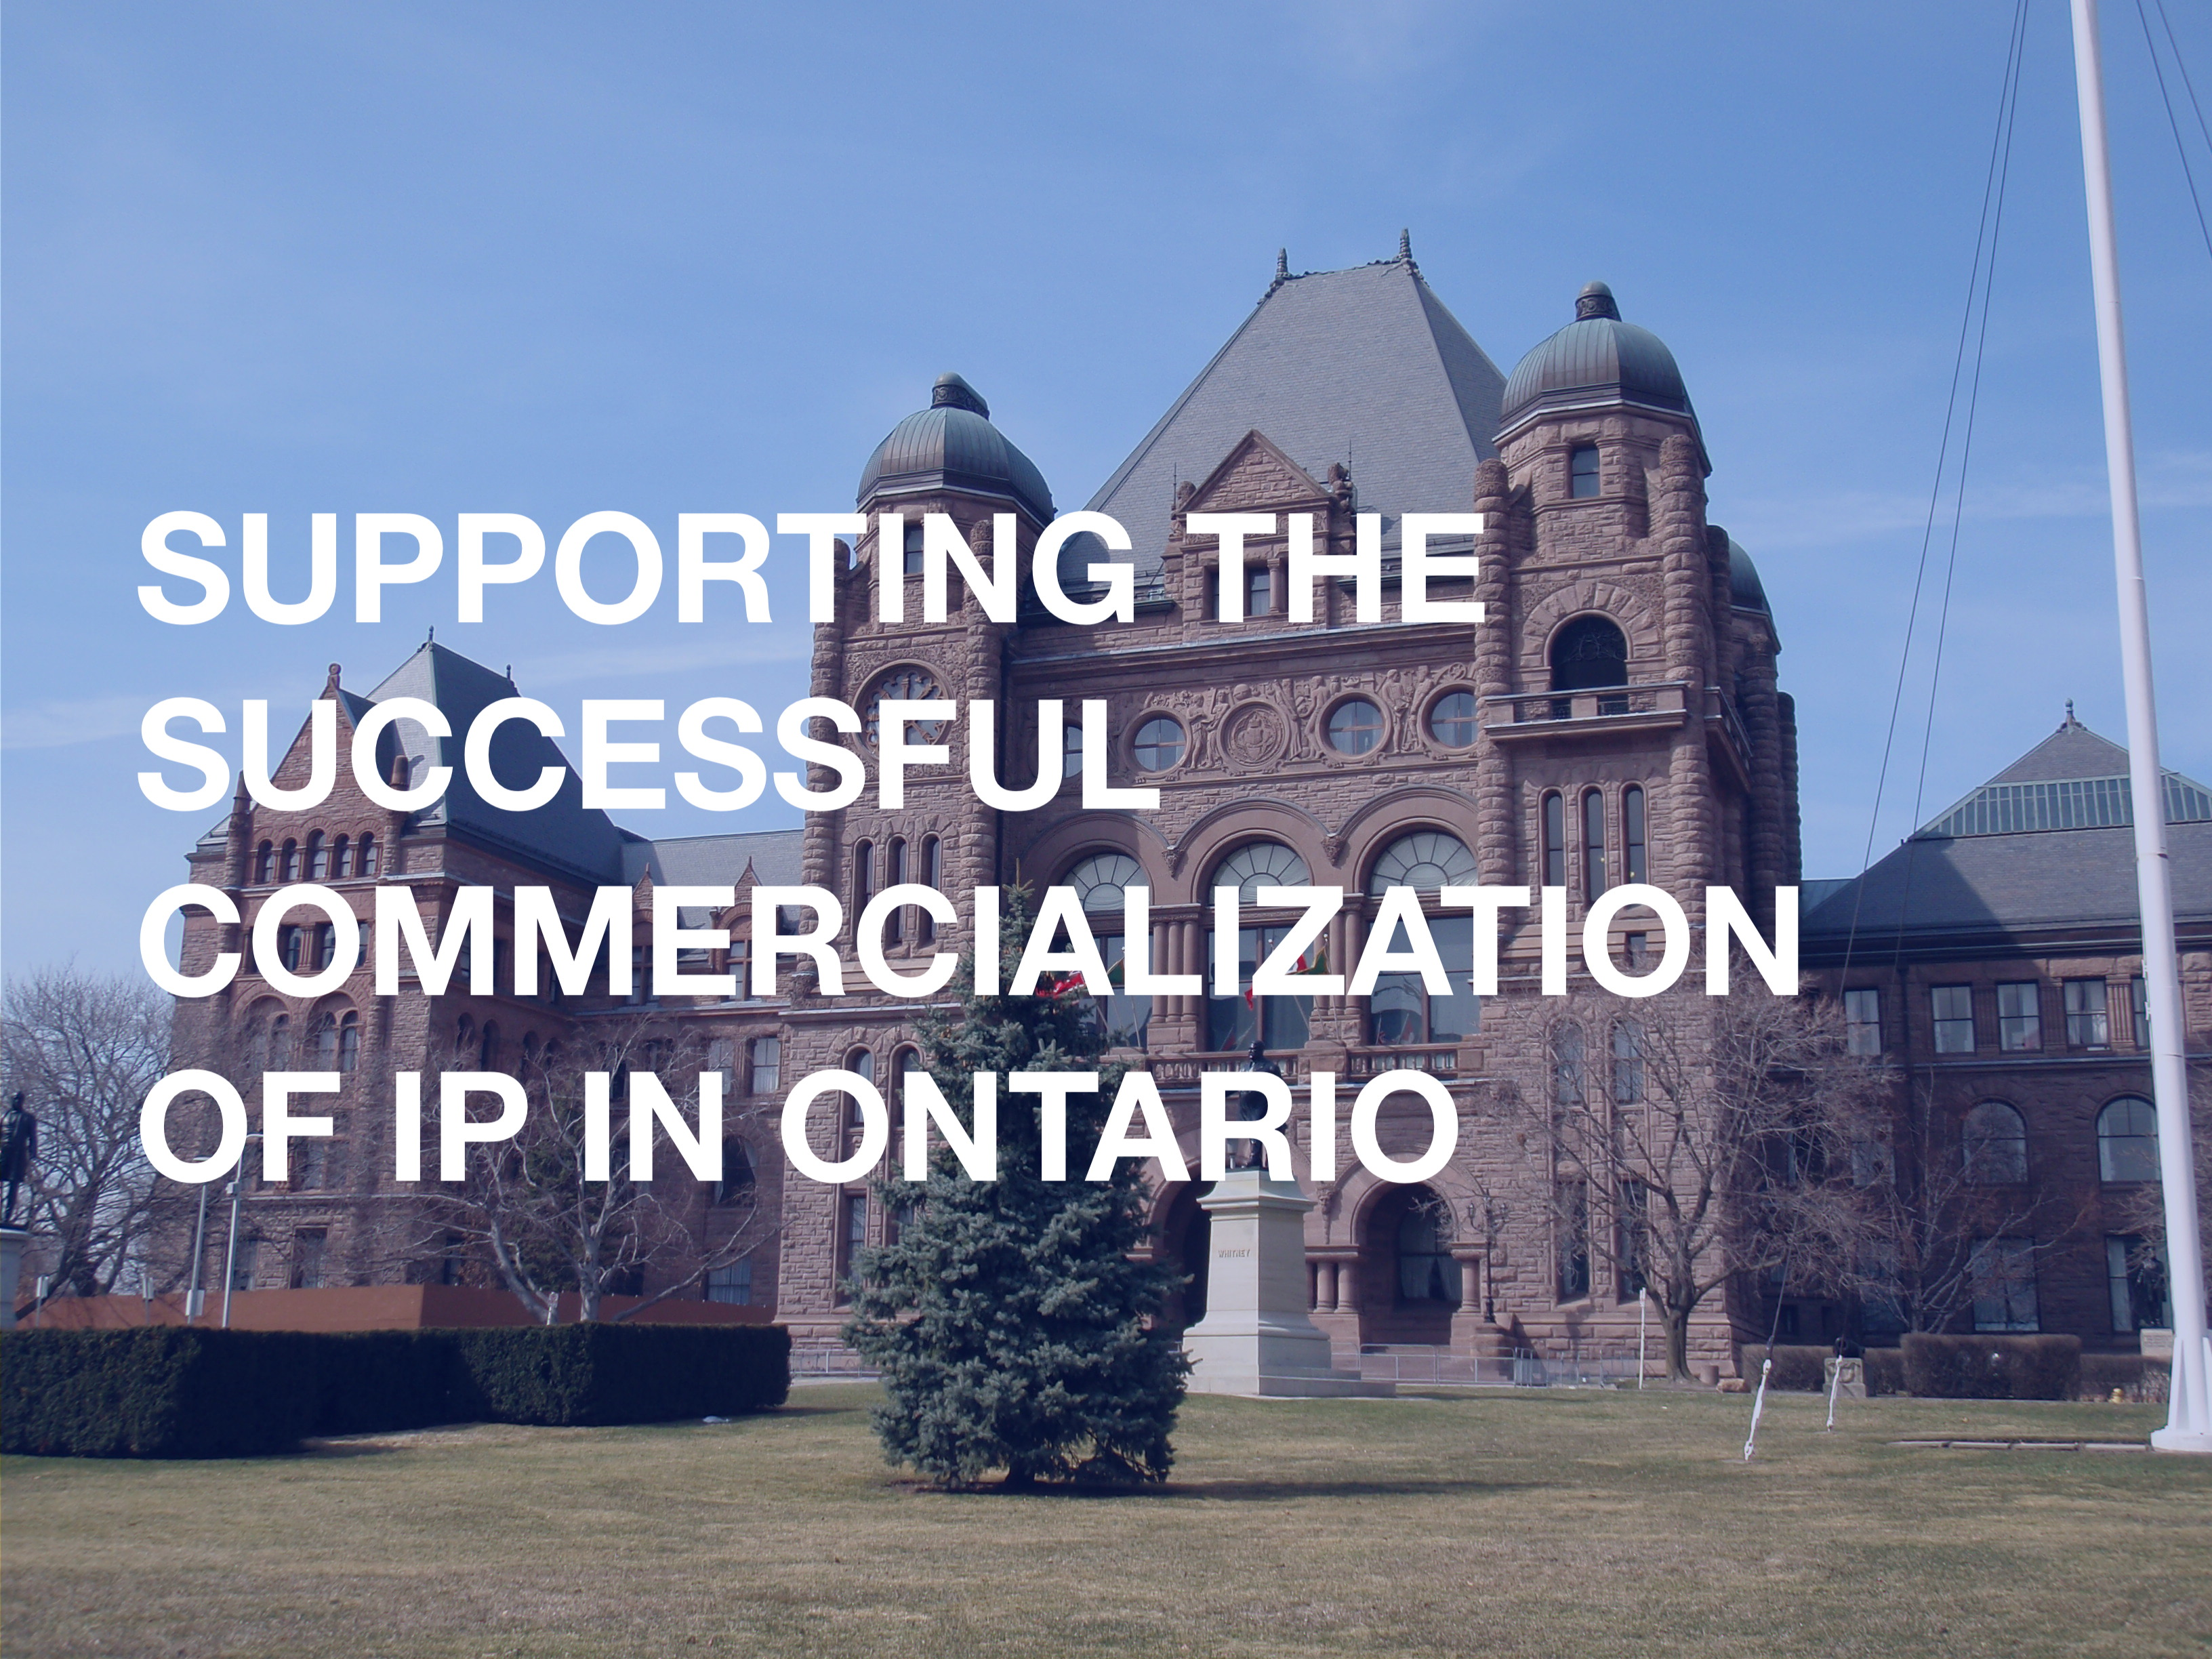 SUPPORTING THE SUCCESSFUL COMMERCIALIZATION OF IP IN ONTARIO